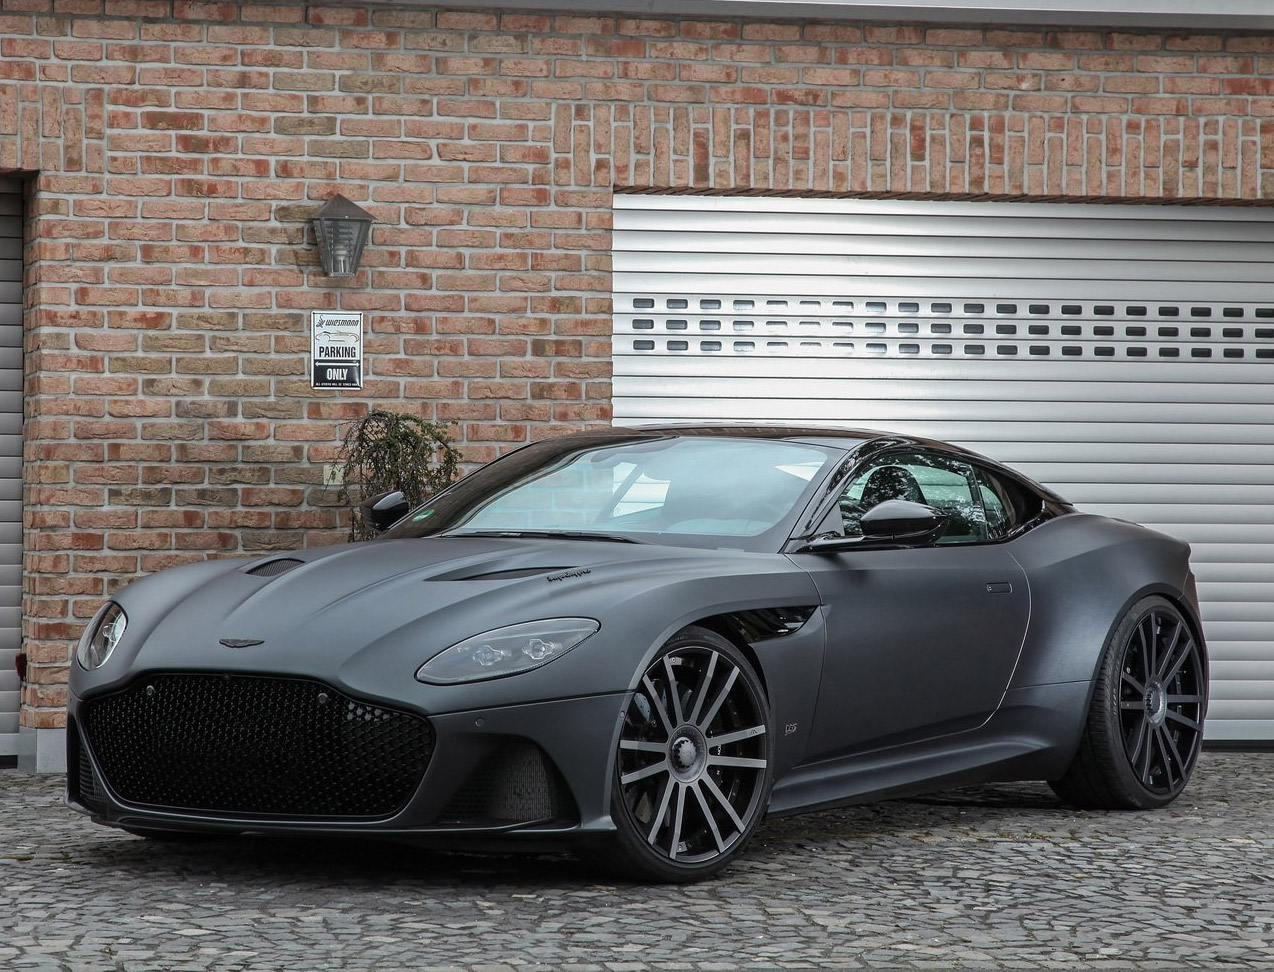 Tuned Aston Martin DBS Superleggera